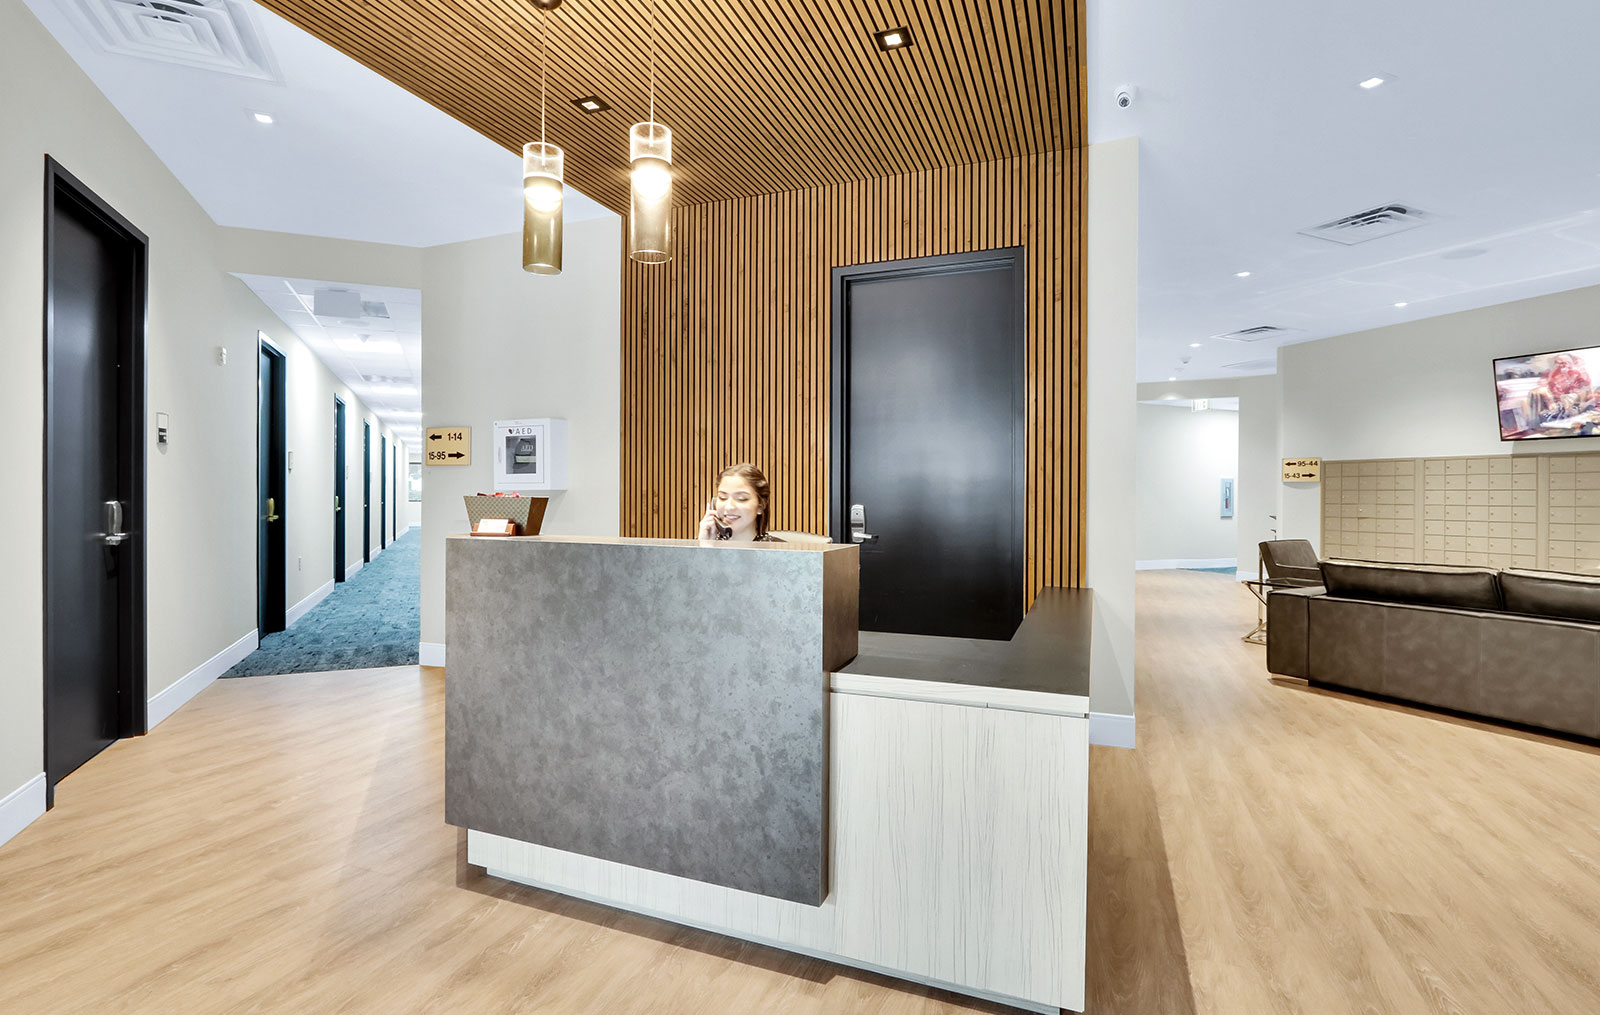 A reception desk with a receptionist taking calls with a hallway of offices to the left and the lounge like space of the mail room on the right